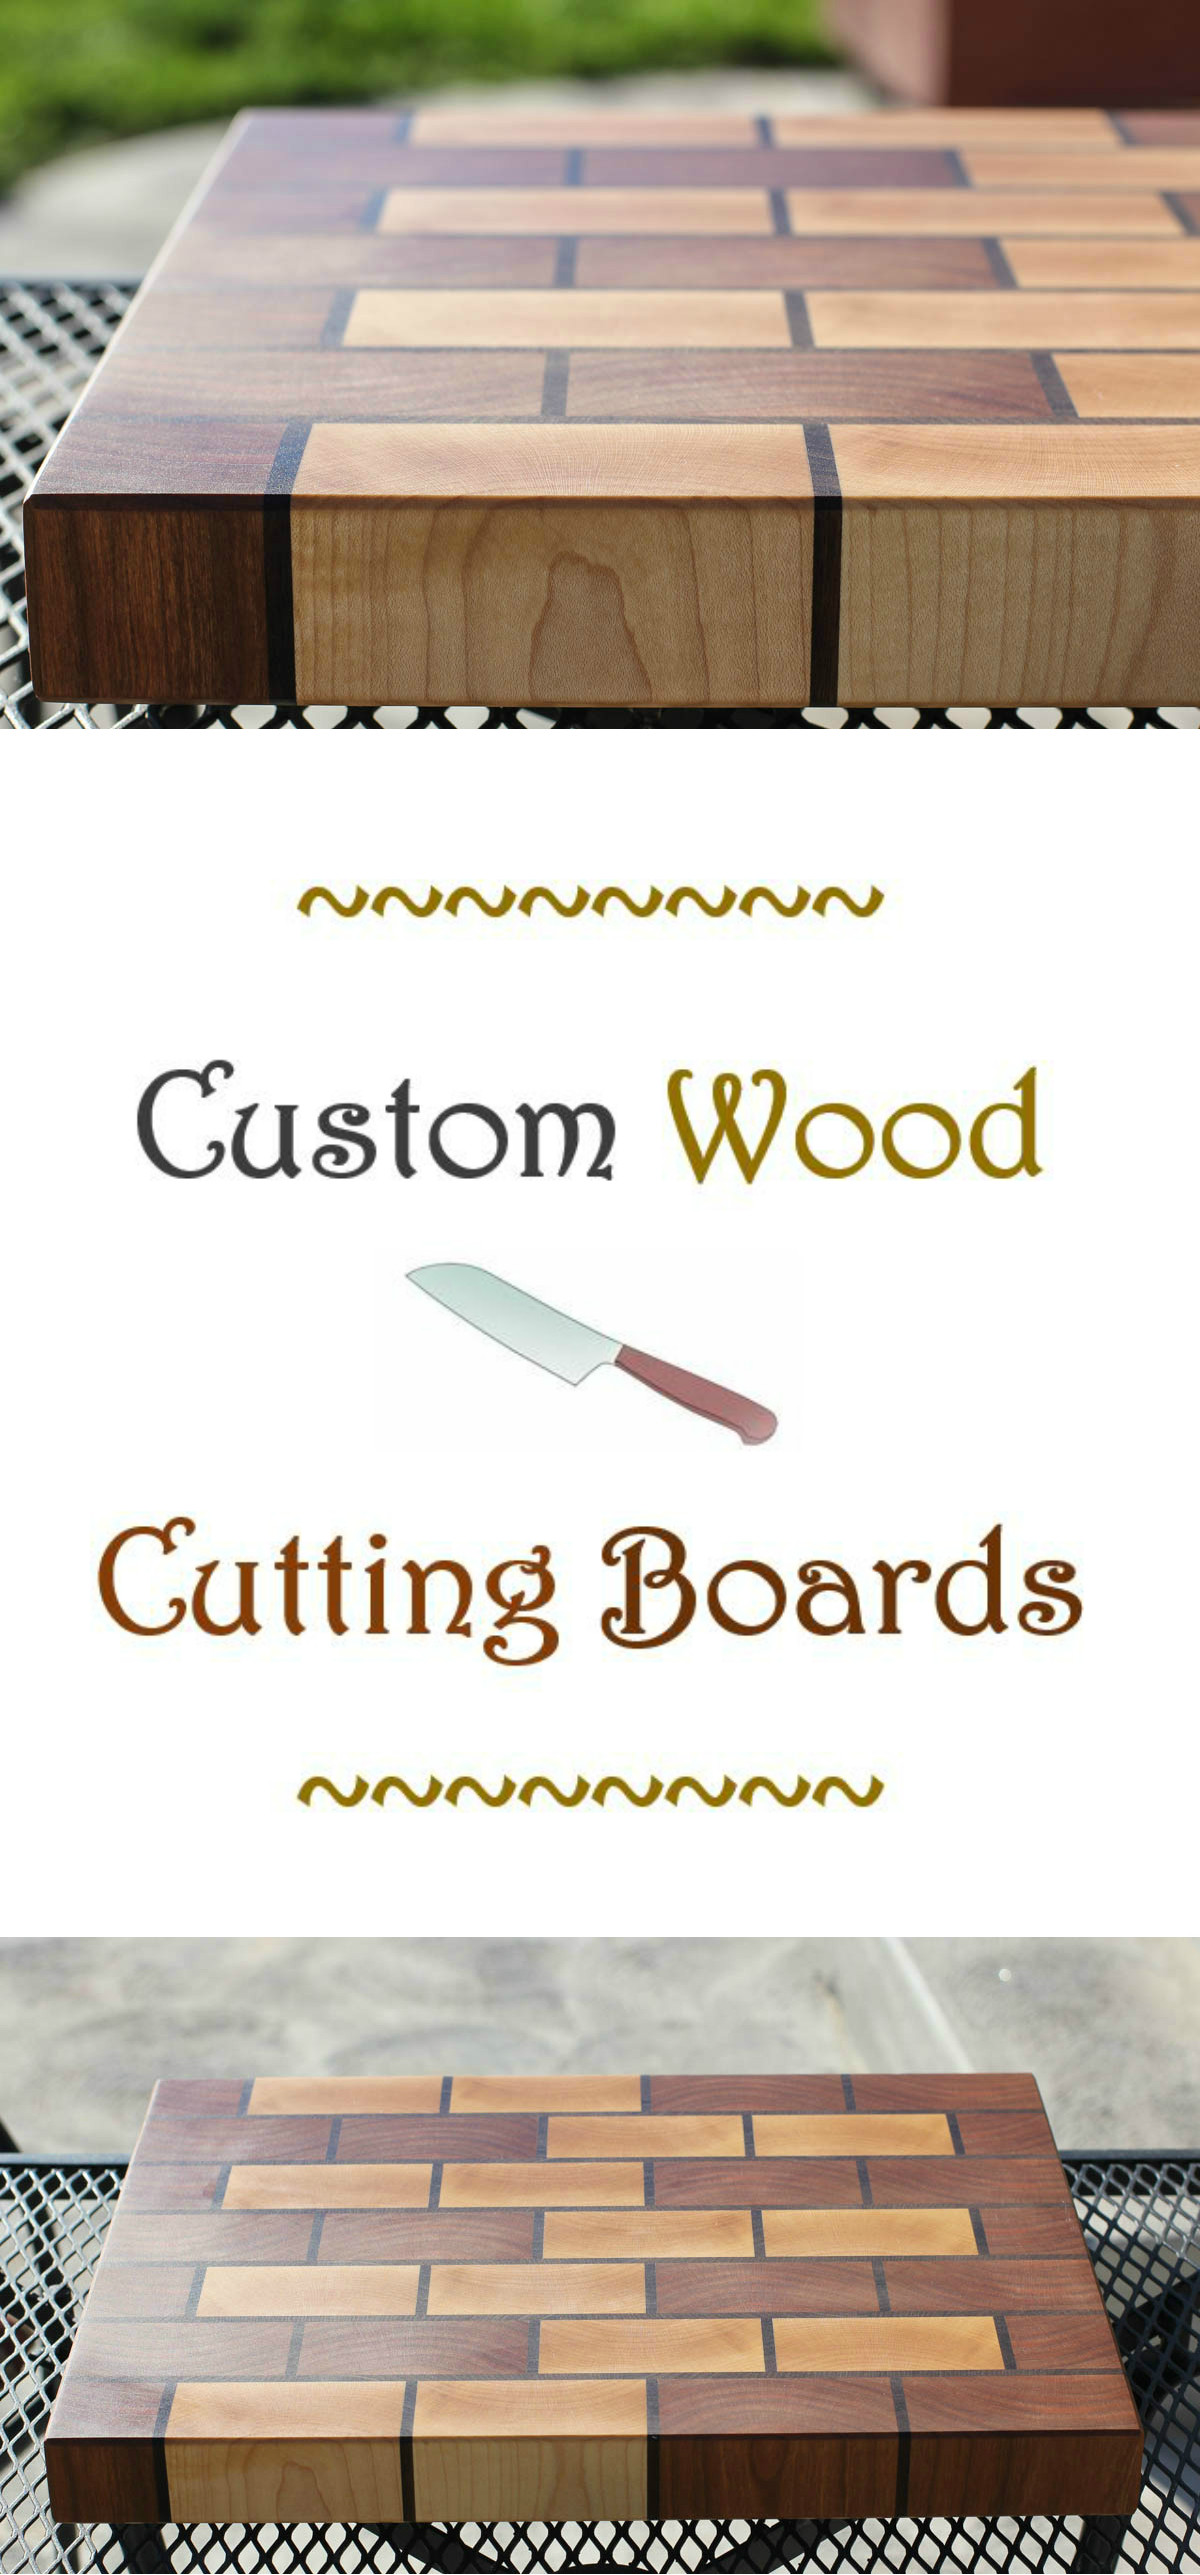 Custom Wood Cutting Boards